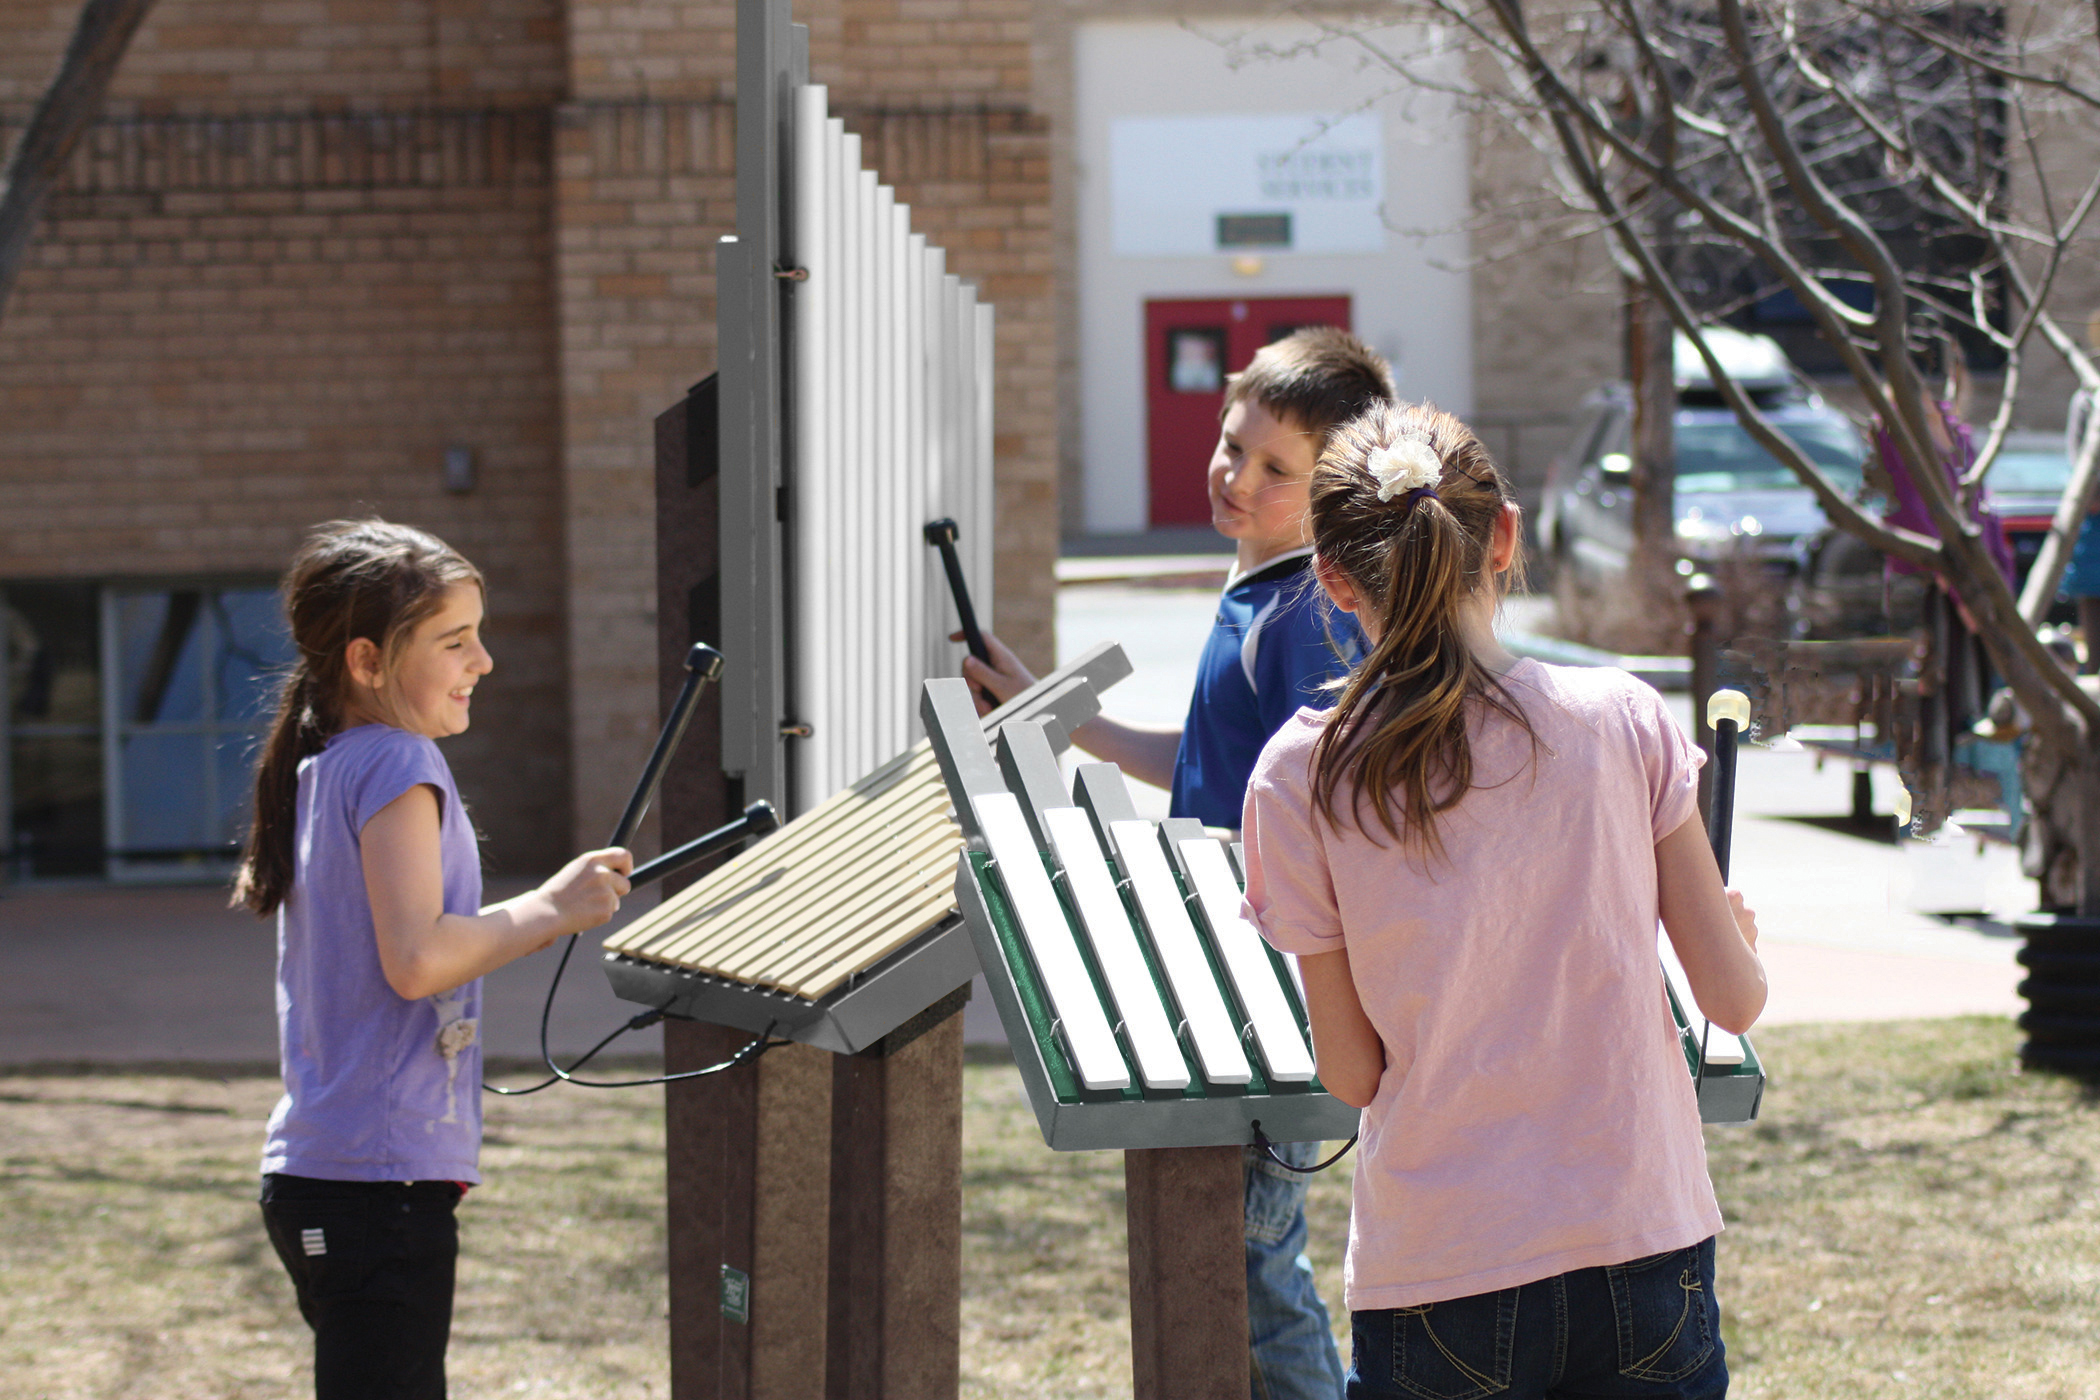 Children playing on outdoor musical instruments